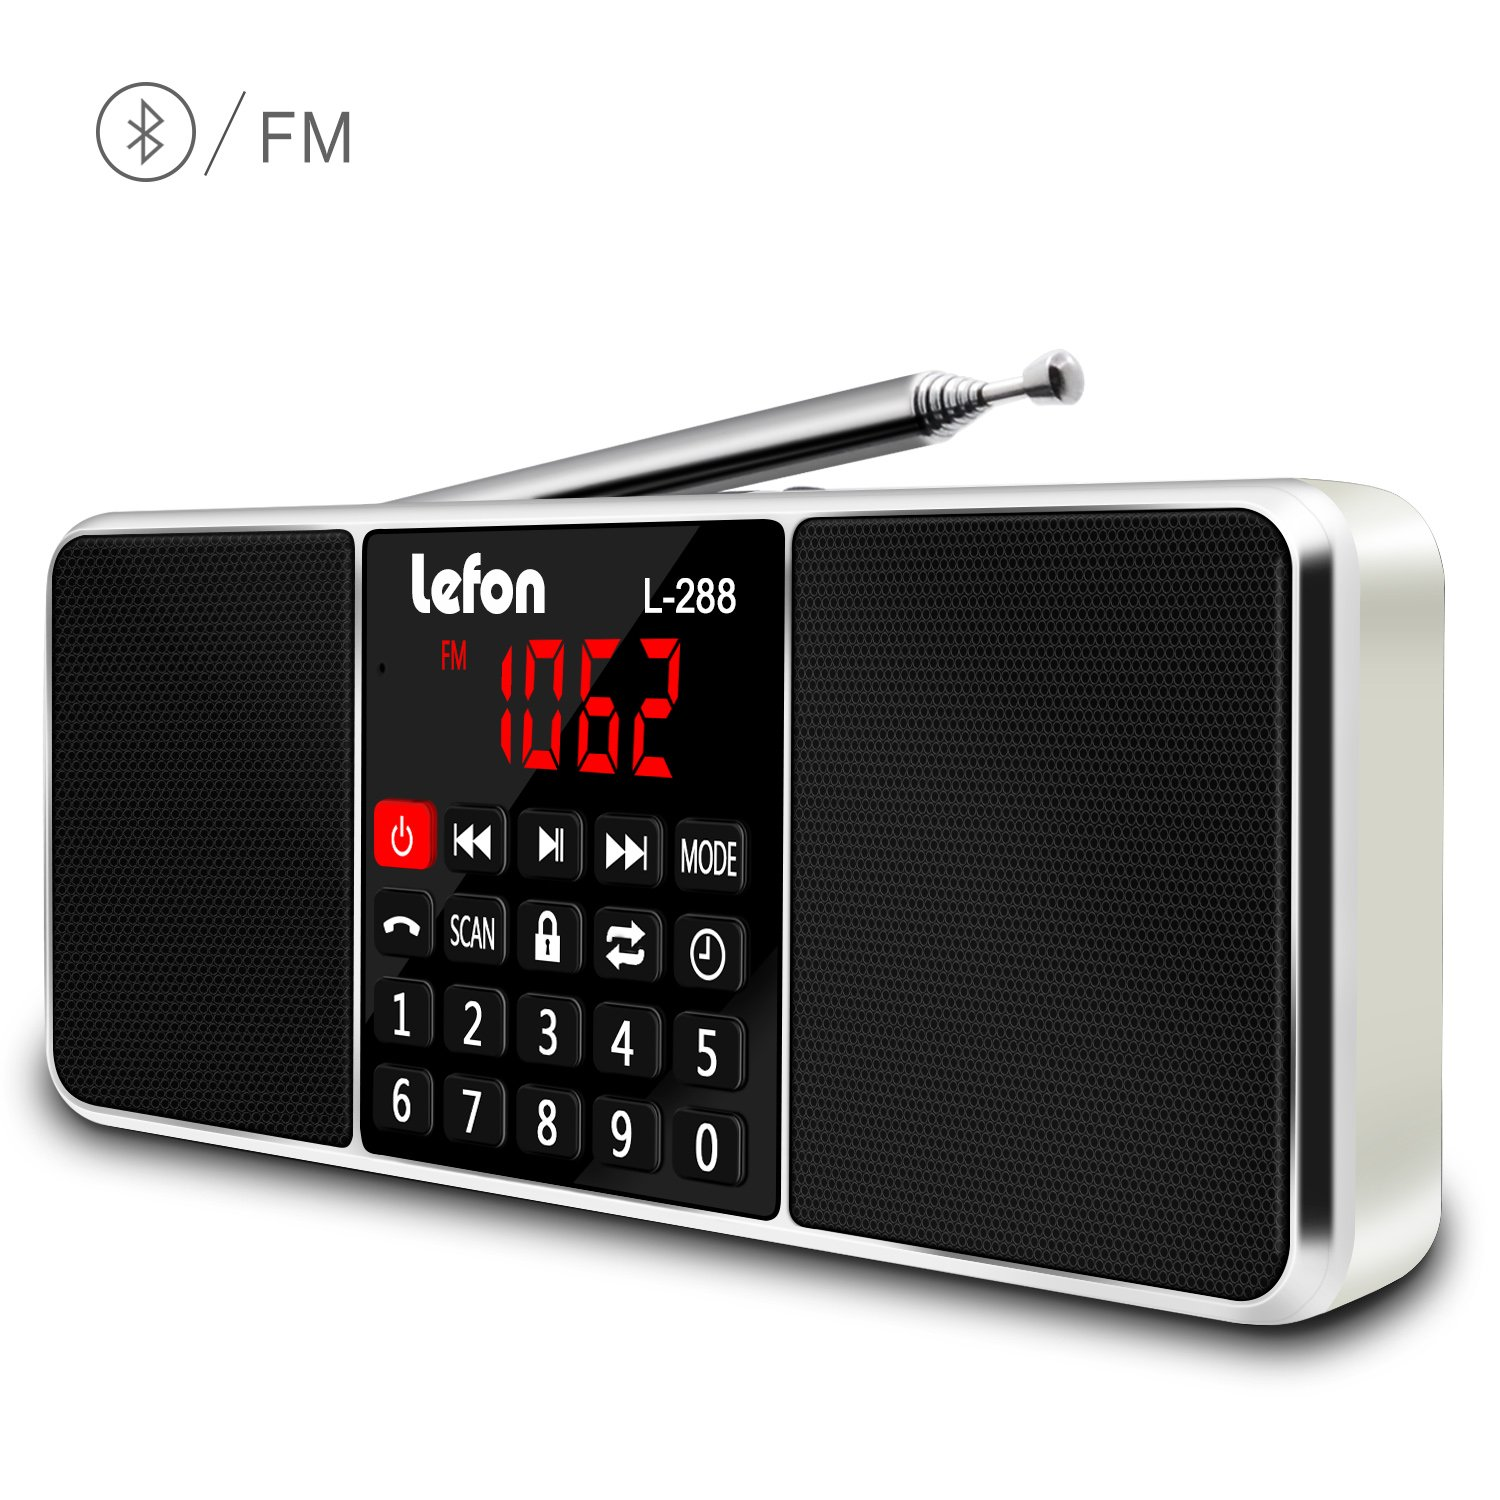 LEFON Multifunction Digital AM FM Radio Bluetooth Media Speaker MP3 Music Player Support TF Card/USB Disk with LED Screen Display and Setting Timing Shutdown Function (Gold-Upgraded Version)